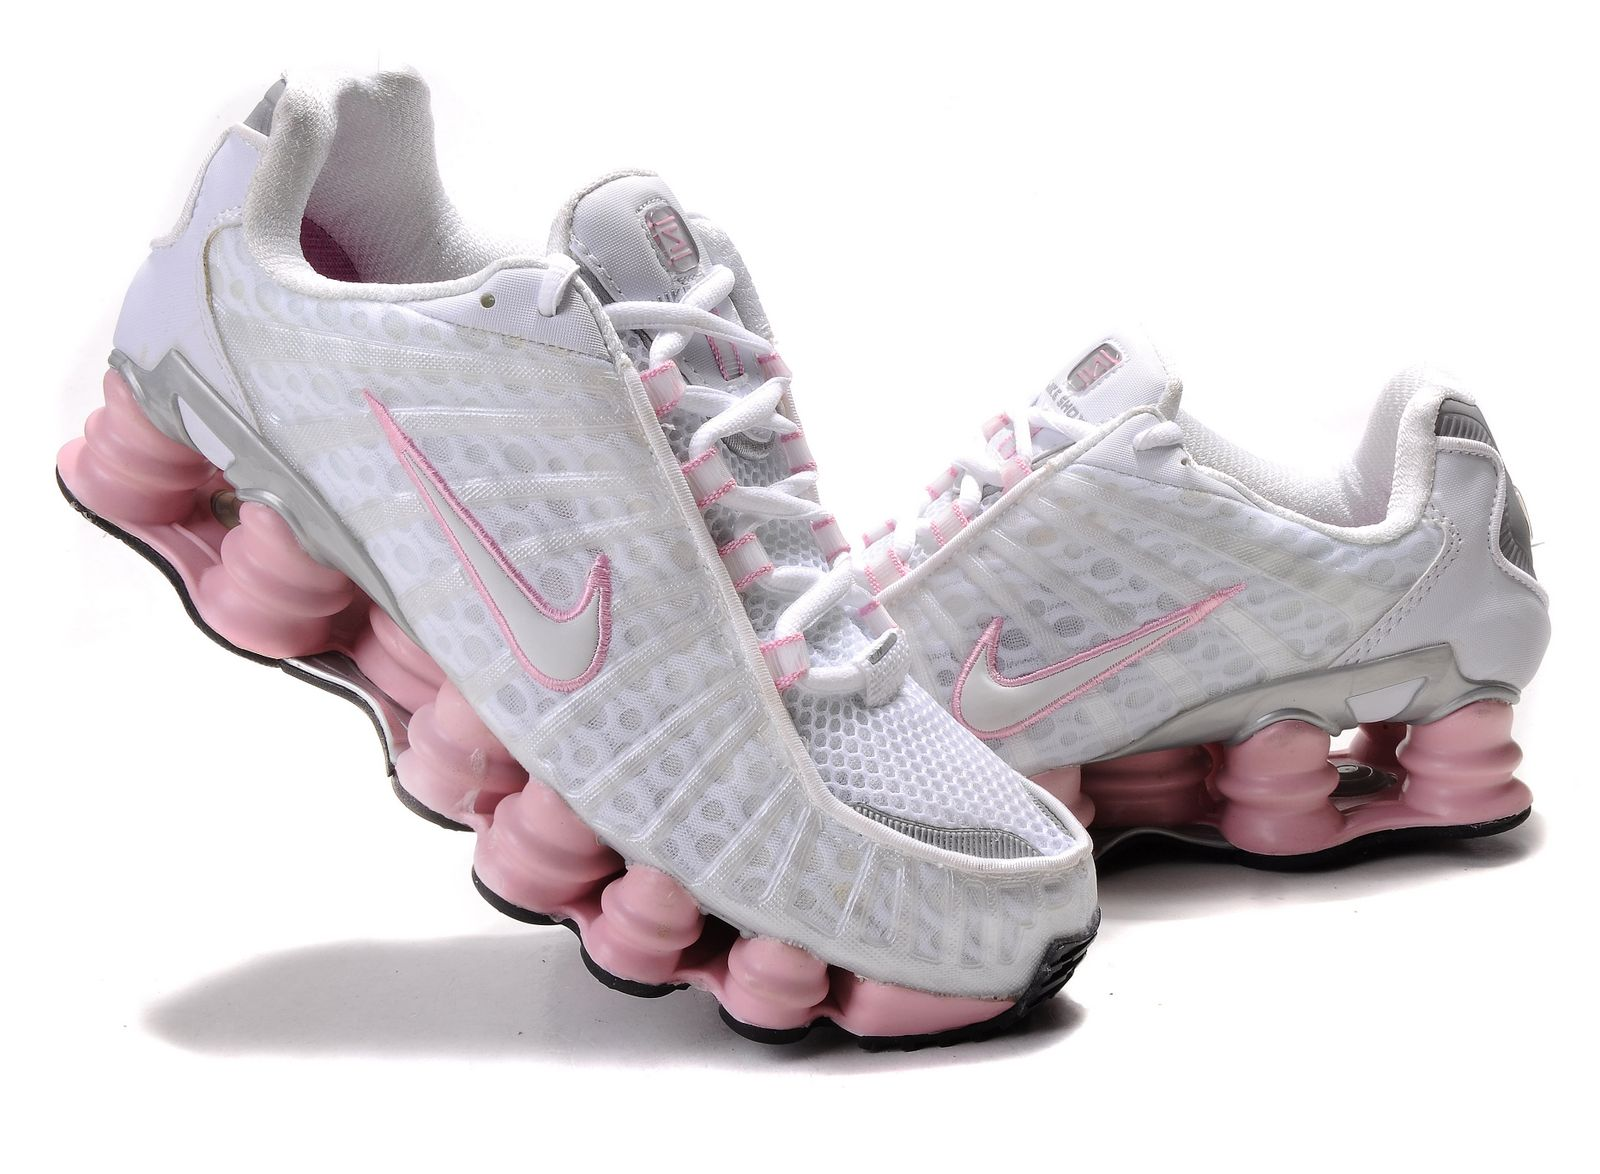 Womens Nike Shox.php Nike Shox For Women